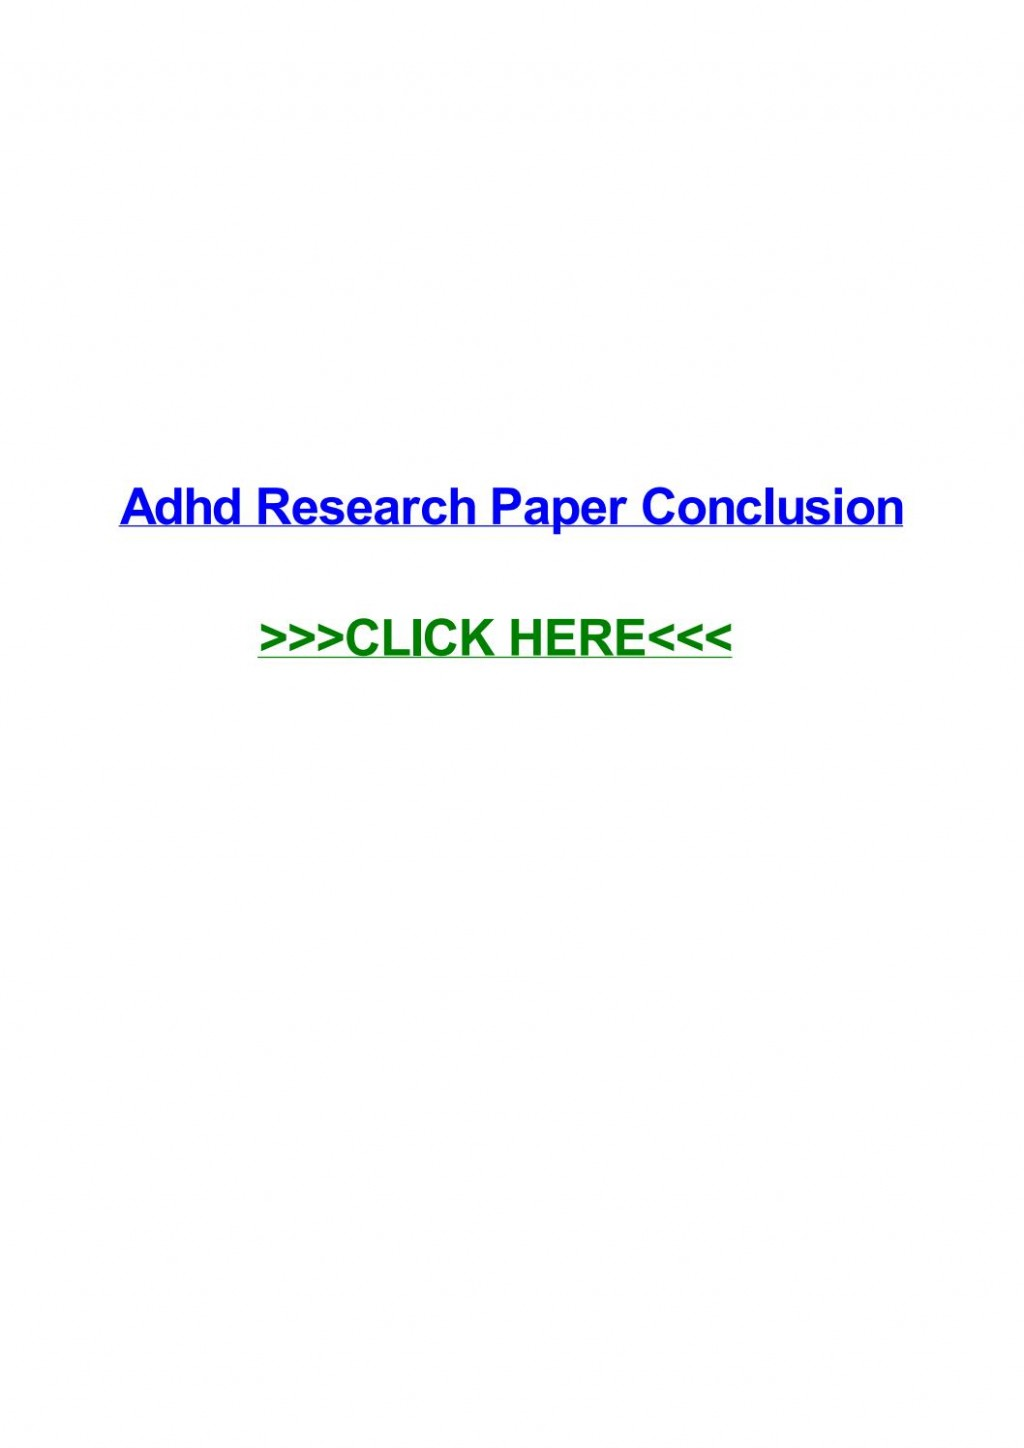 009 Page 1 Adhd Research Paper Impressive Conclusion Large